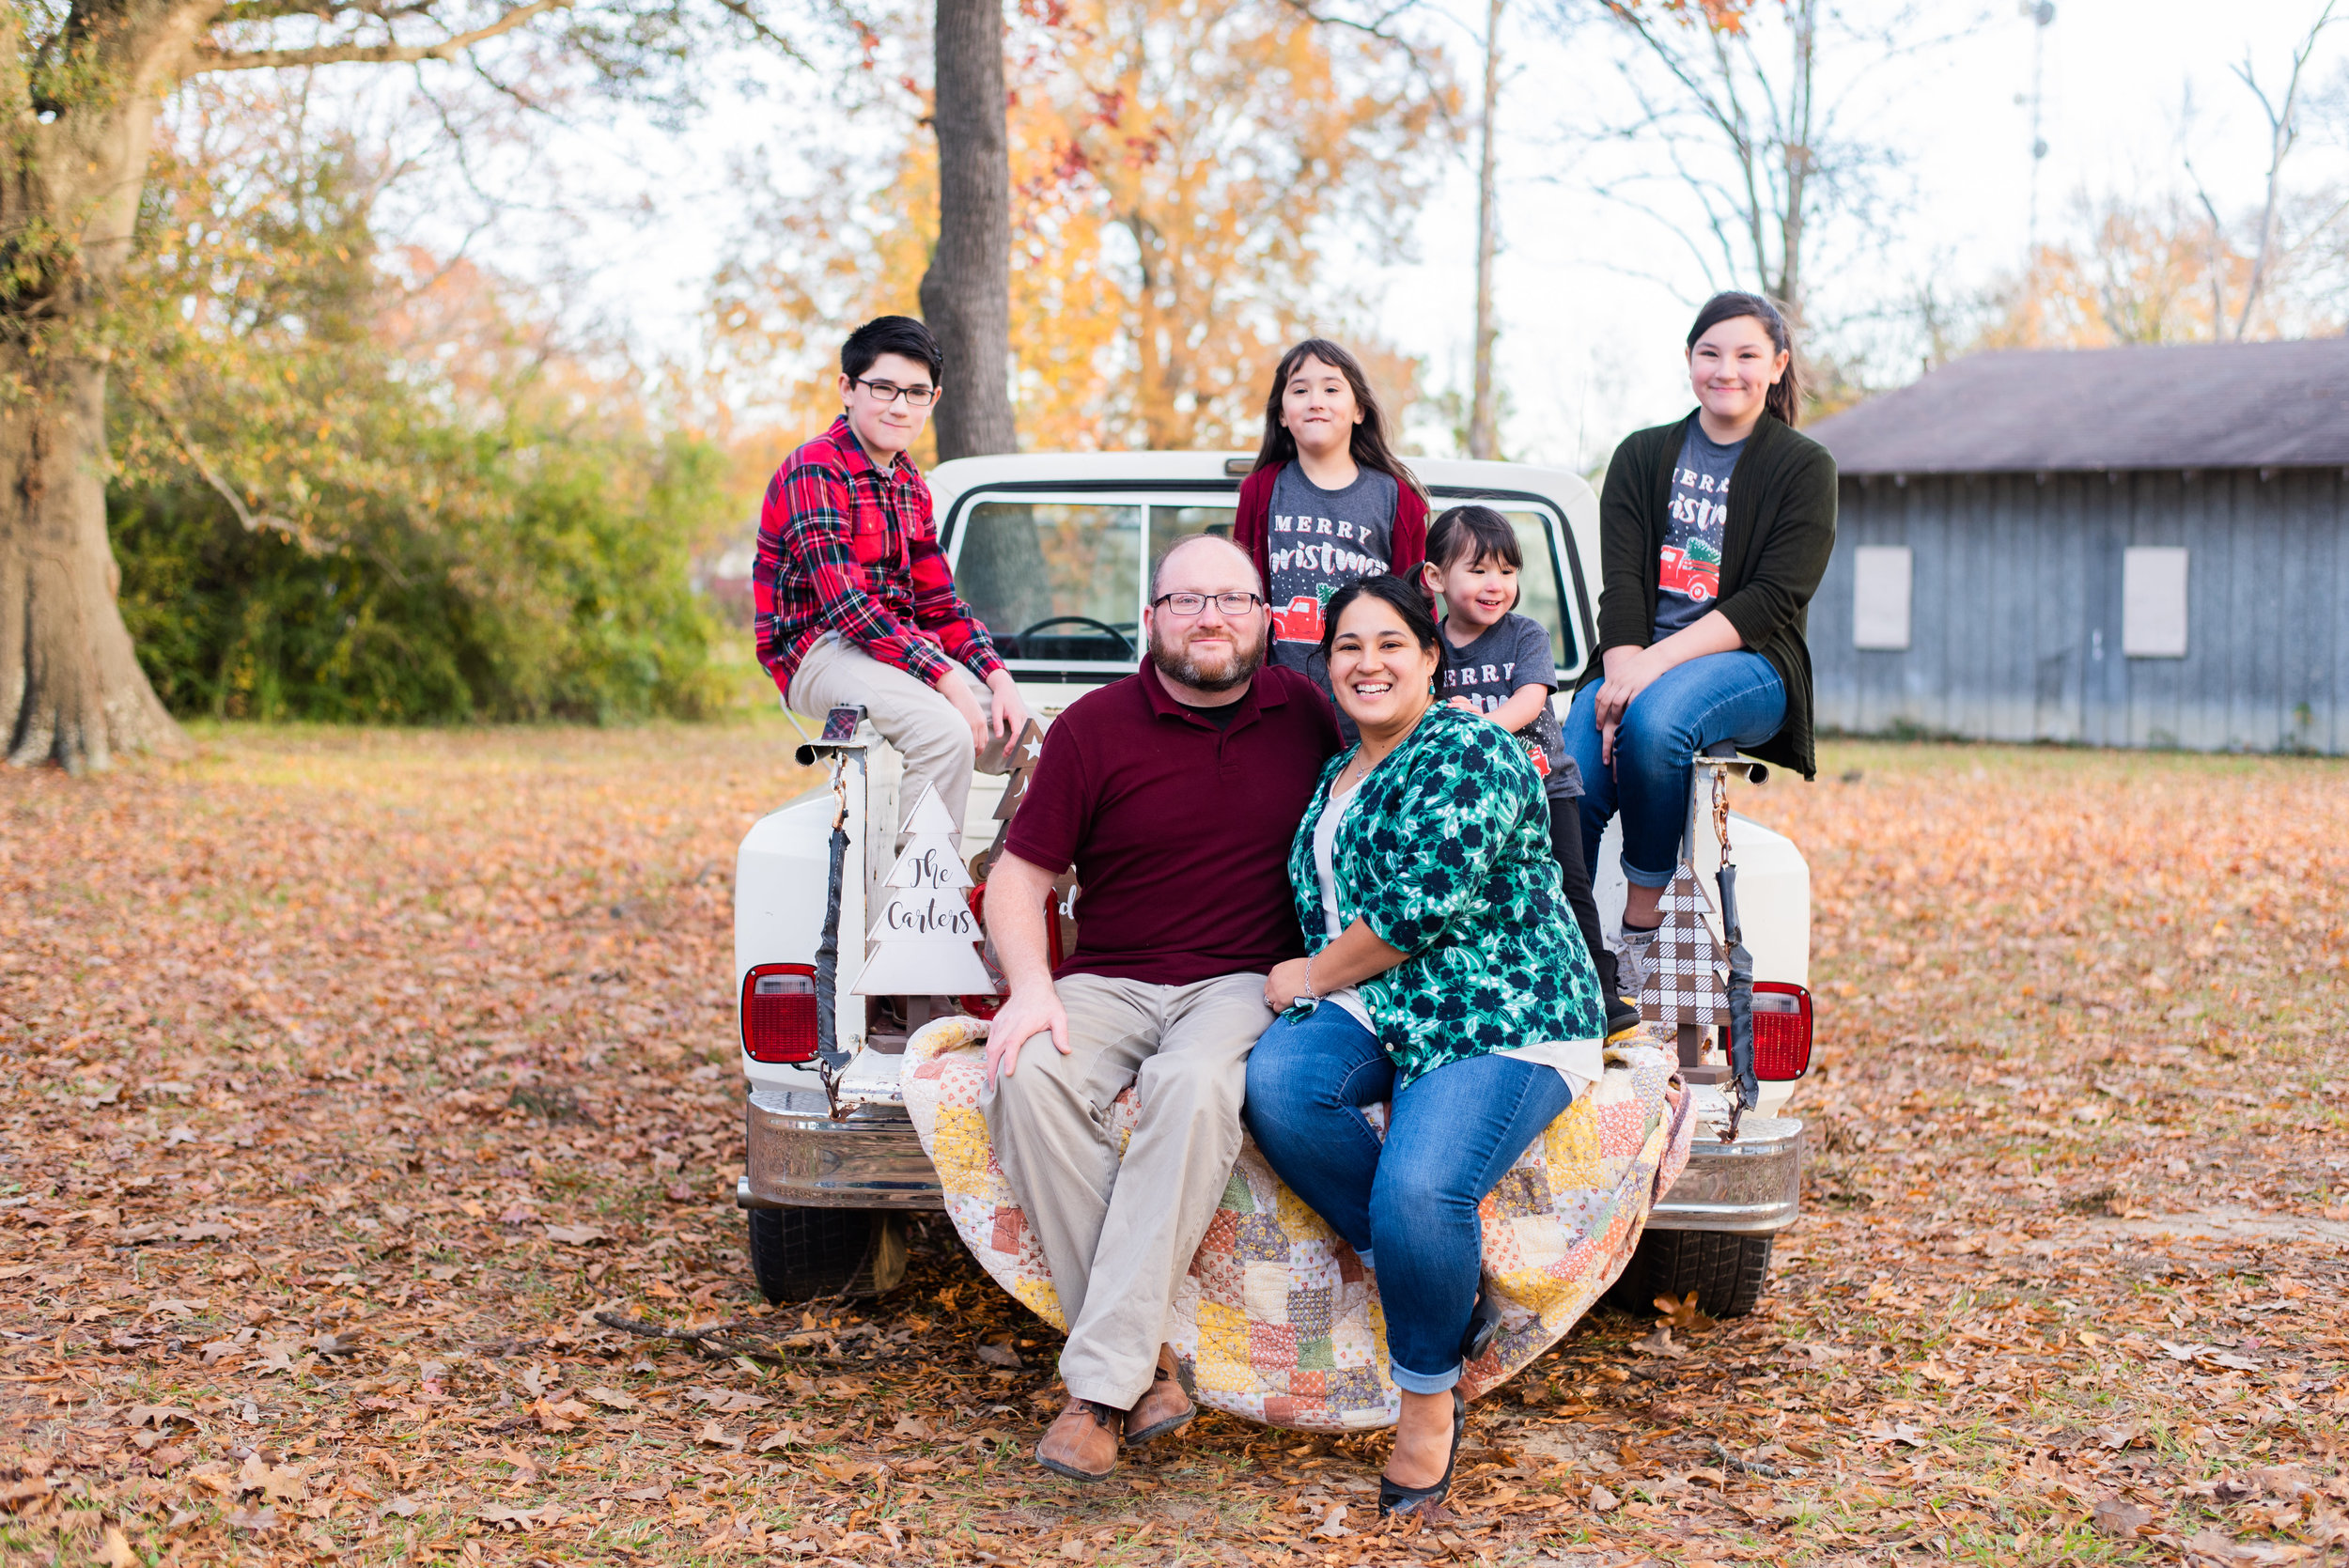 """Associate Pastor-Tom Carter   Tom and his family came to West Monroe from Garland, TX in July of 2018 to serve at Ridge Avenue.  """"My faith journey began when I was saved at the age of fifteen at summer camp with a Baptist youth group. It became my belief that Jesus is the Son of God who has taken the punishment for my sins and redeemed me to new, eternal life, removing my penalty for sin and imputing to me His righteousness.""""  """"After my salvation experience it also became clear that God did not want me to be a bystander to His work and called me to something more. In the years since my salvation I have been licensed and ordained. I have continued to serve in several Lay leadership positions. Some of my favorites have been as Bible Drill small group leader, camp counselor at Riverbend/Mt. Lebanon, GED Ministry, Mentoring, Outreach and Discipleship.""""  Tom Graduated Magna-cum-laude from UNT with my BA in Sociology with a Psychology Minor ,  Go Mean Green!  And is currently pursuing a Master of Arts in Theological Studies from Dallas Baptist University.  The Lord has blessed Tom with his faithful wife Dee and four children who have encouraged and served beside him along this journey. The Carter's commitment to the Lord as a family includes full participation in church services and activities as a family.  Tom's life verse is 1 Corinthians 10:31 which reminds us all that,   """"Whether, then, you eat or drink or whatever you do, do all to the glory of God.""""    Email Tom: tcarterrabc@outlook.com"""